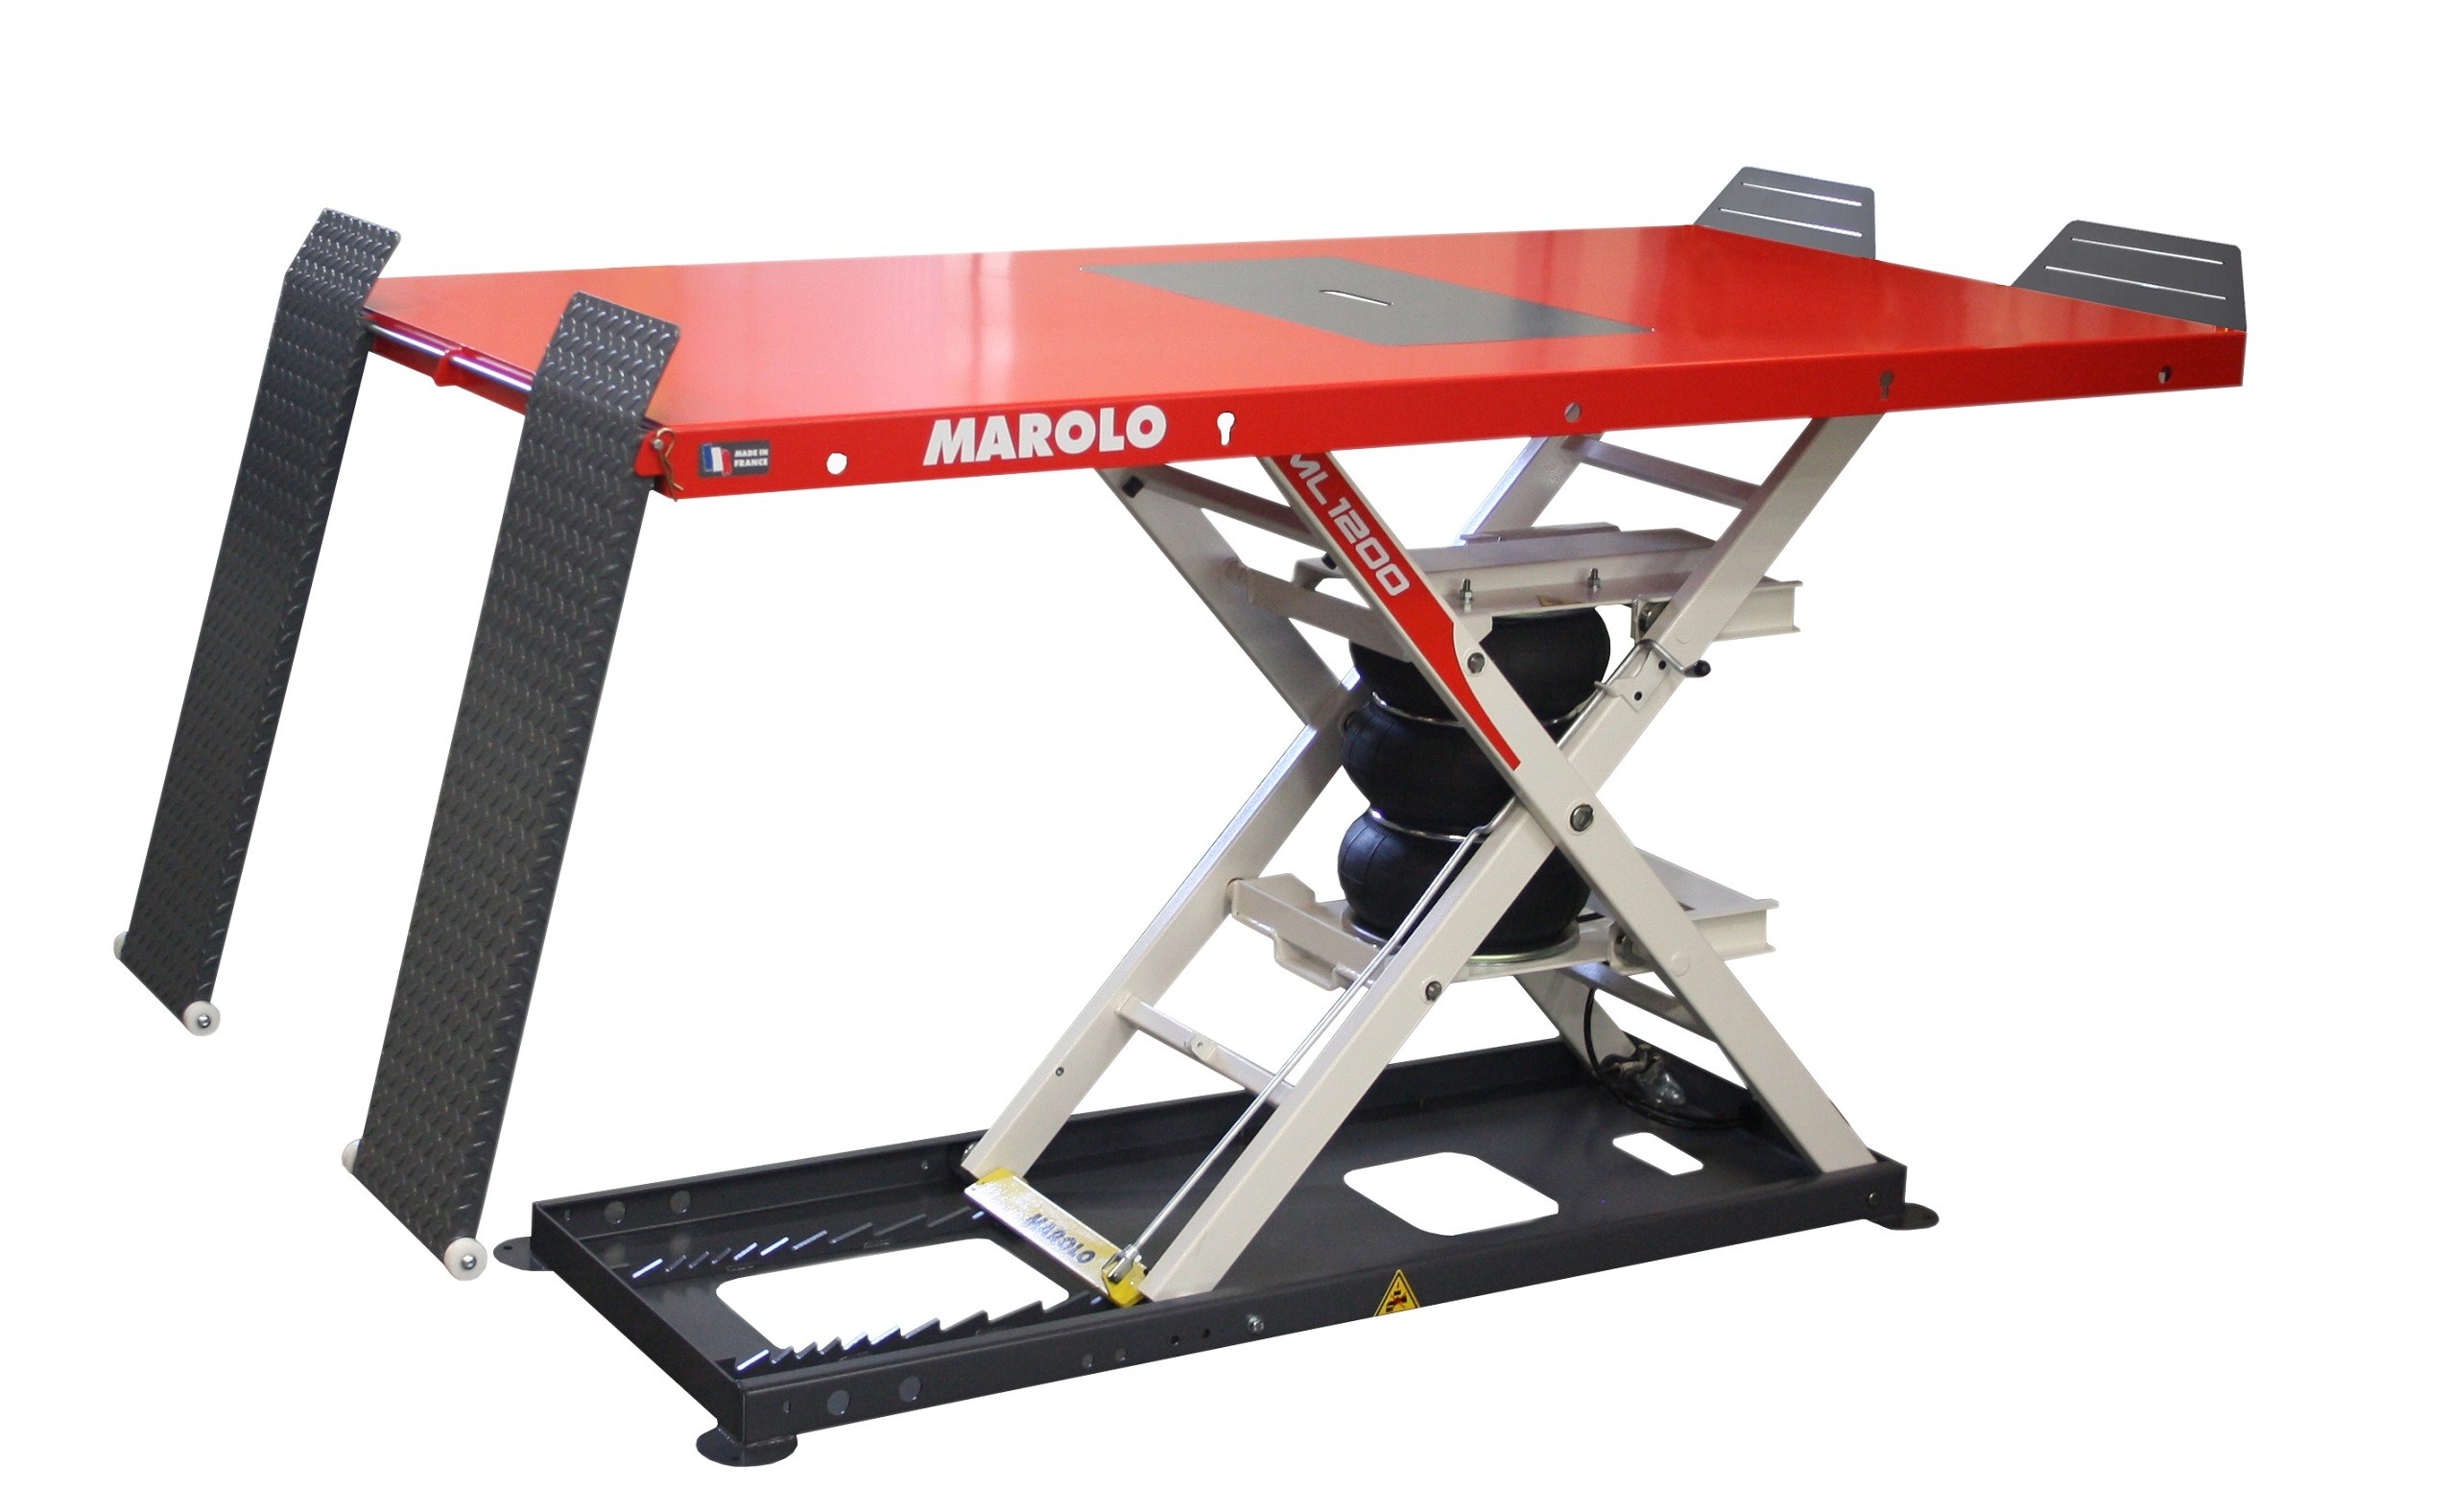 Table motoculture marololift 1200 PA pneumatique